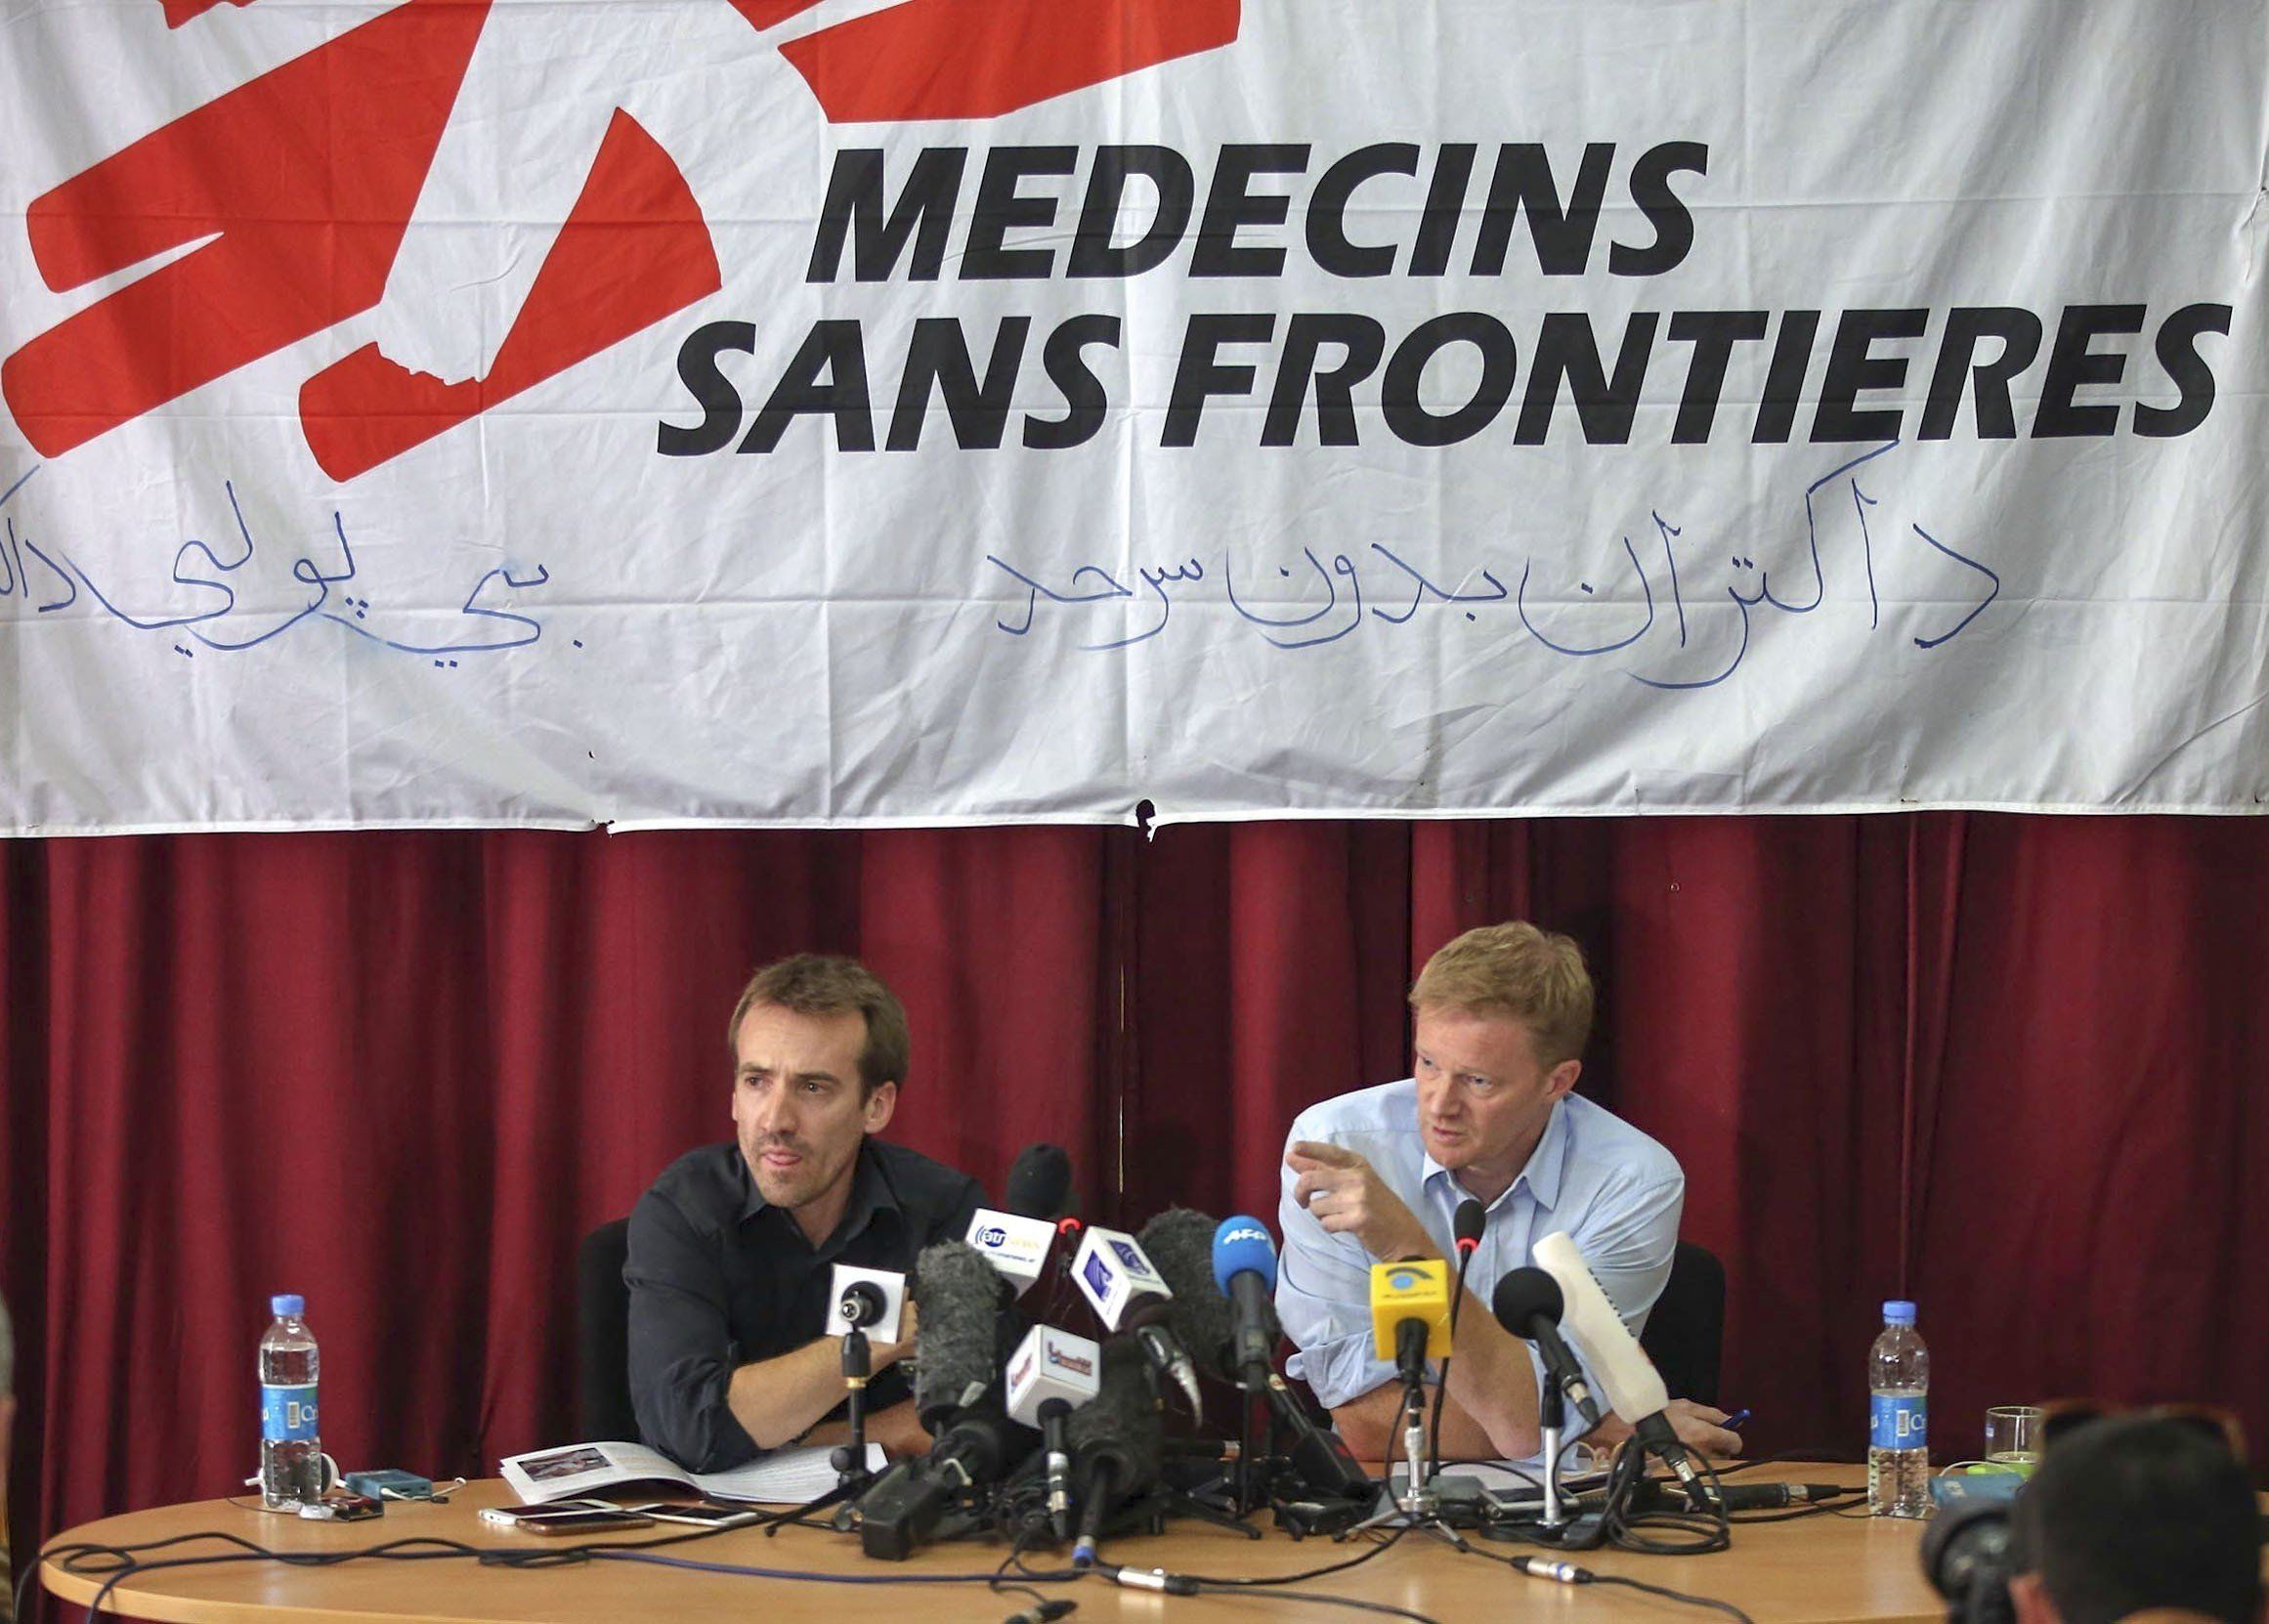 KABUL, AFGHANISTAN - OCTOBER 8: General Director of Doctors Without Borders, or Médecins Sans Frontières (MSF), Christopher Stokes (R)  and Country Representative, Guilhem Molinie (L) hold a press conference over the airstrike on Kunduz hospital, at the MSF office in Kabul on October 8, 2015. (Photo by Mustafa Bag/Anadolu Agency/Getty Images)